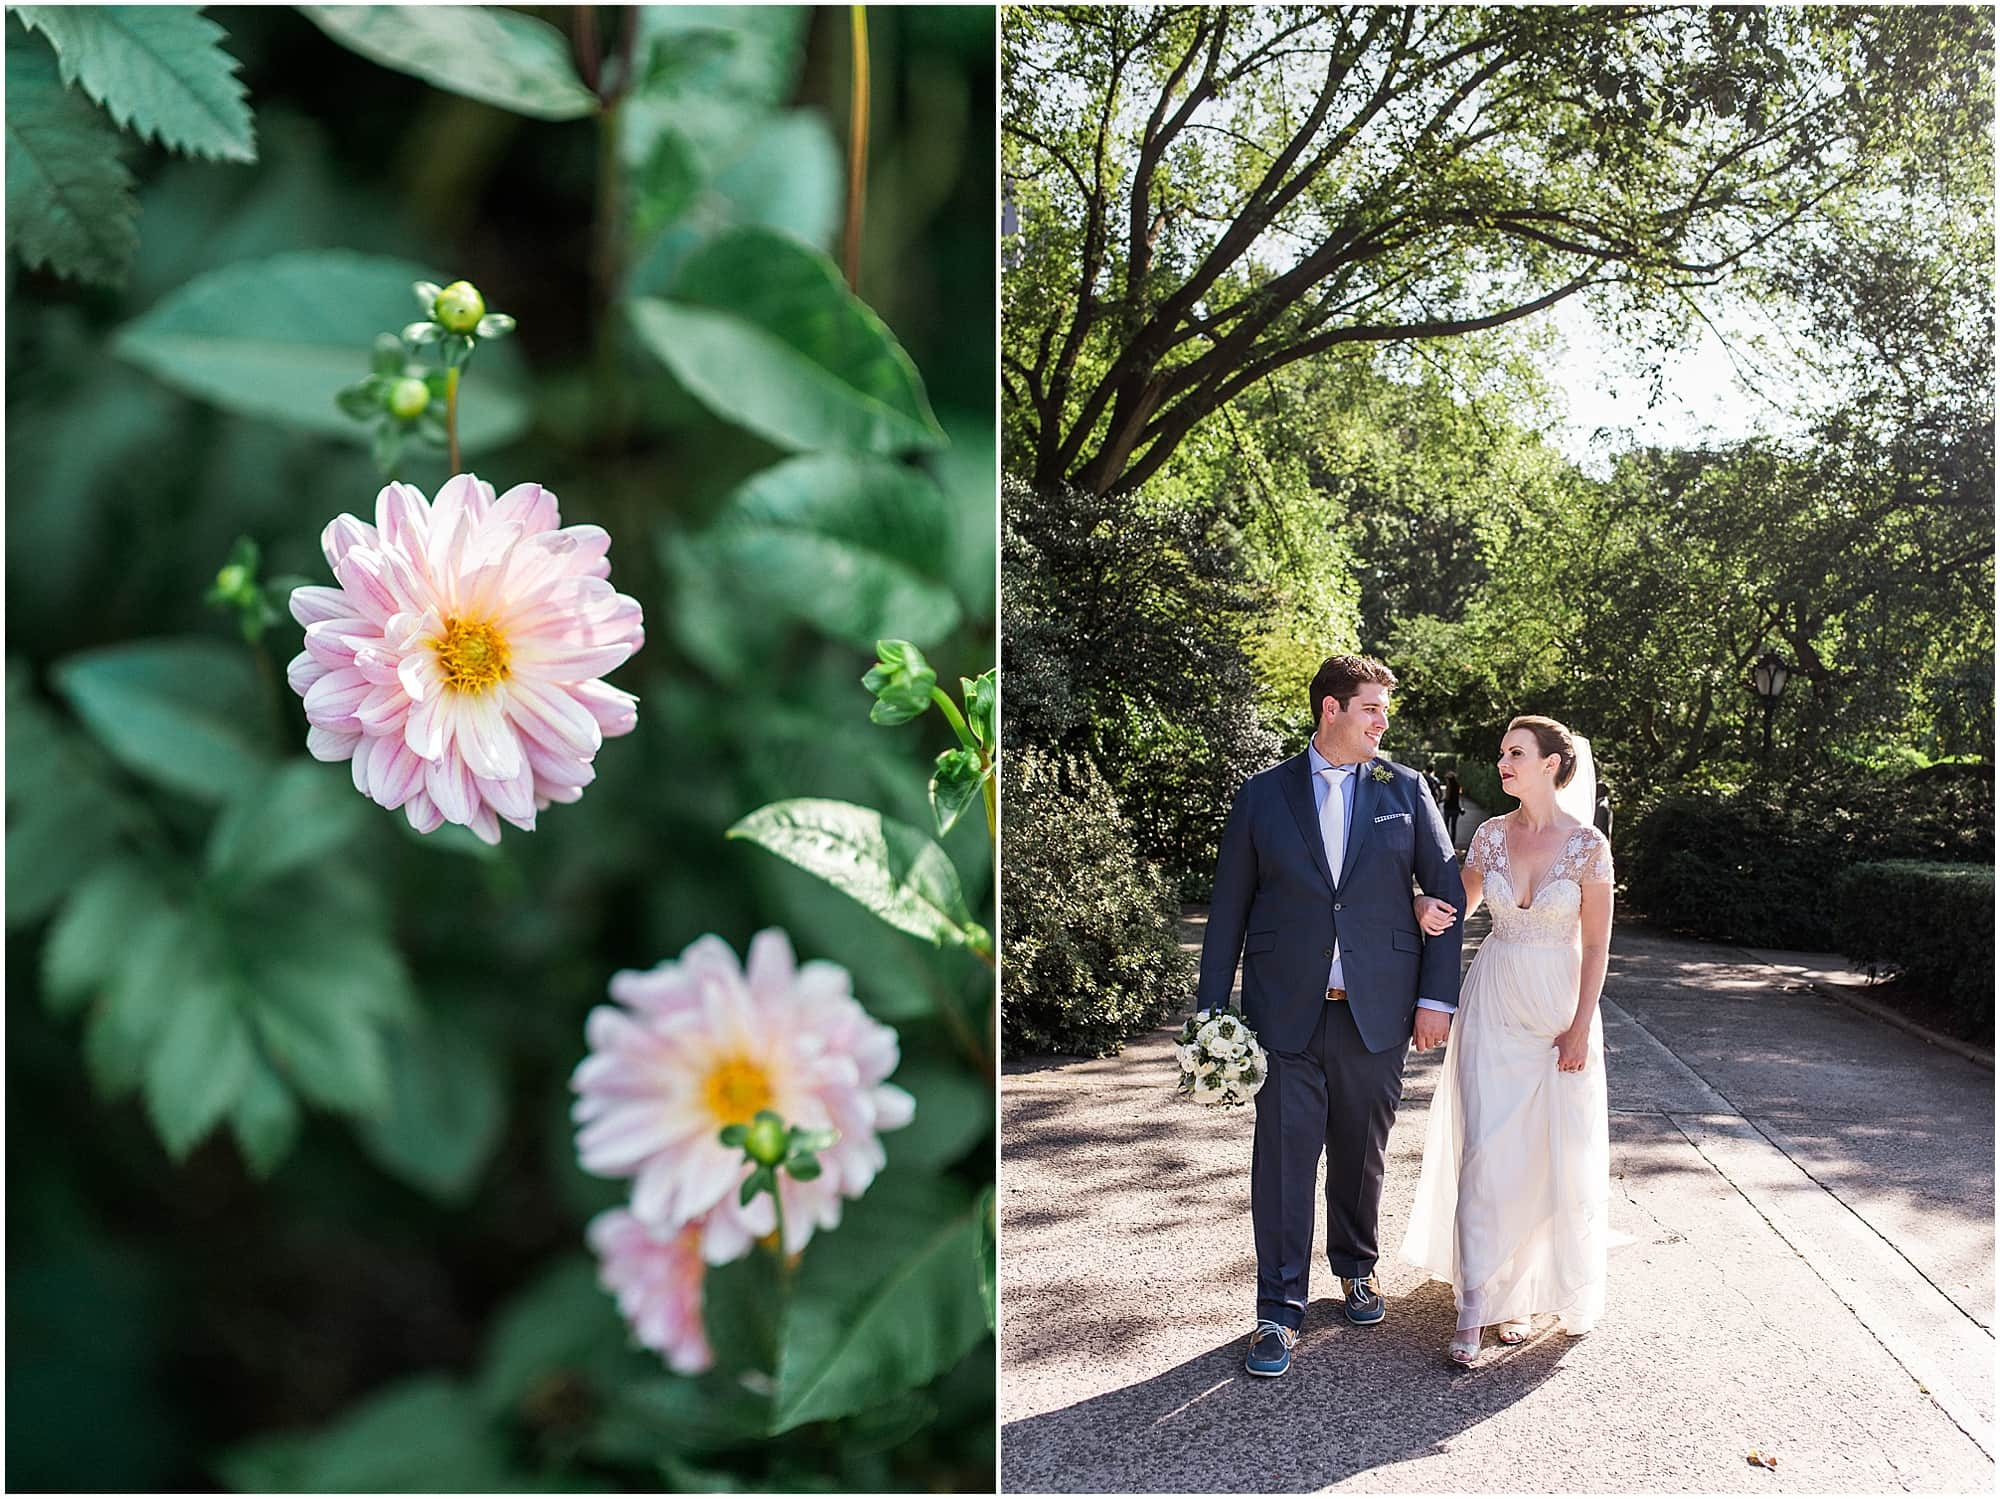 Eileen Meny Photography, Summer Conservatory Gardens Wedding, NYC Wedding